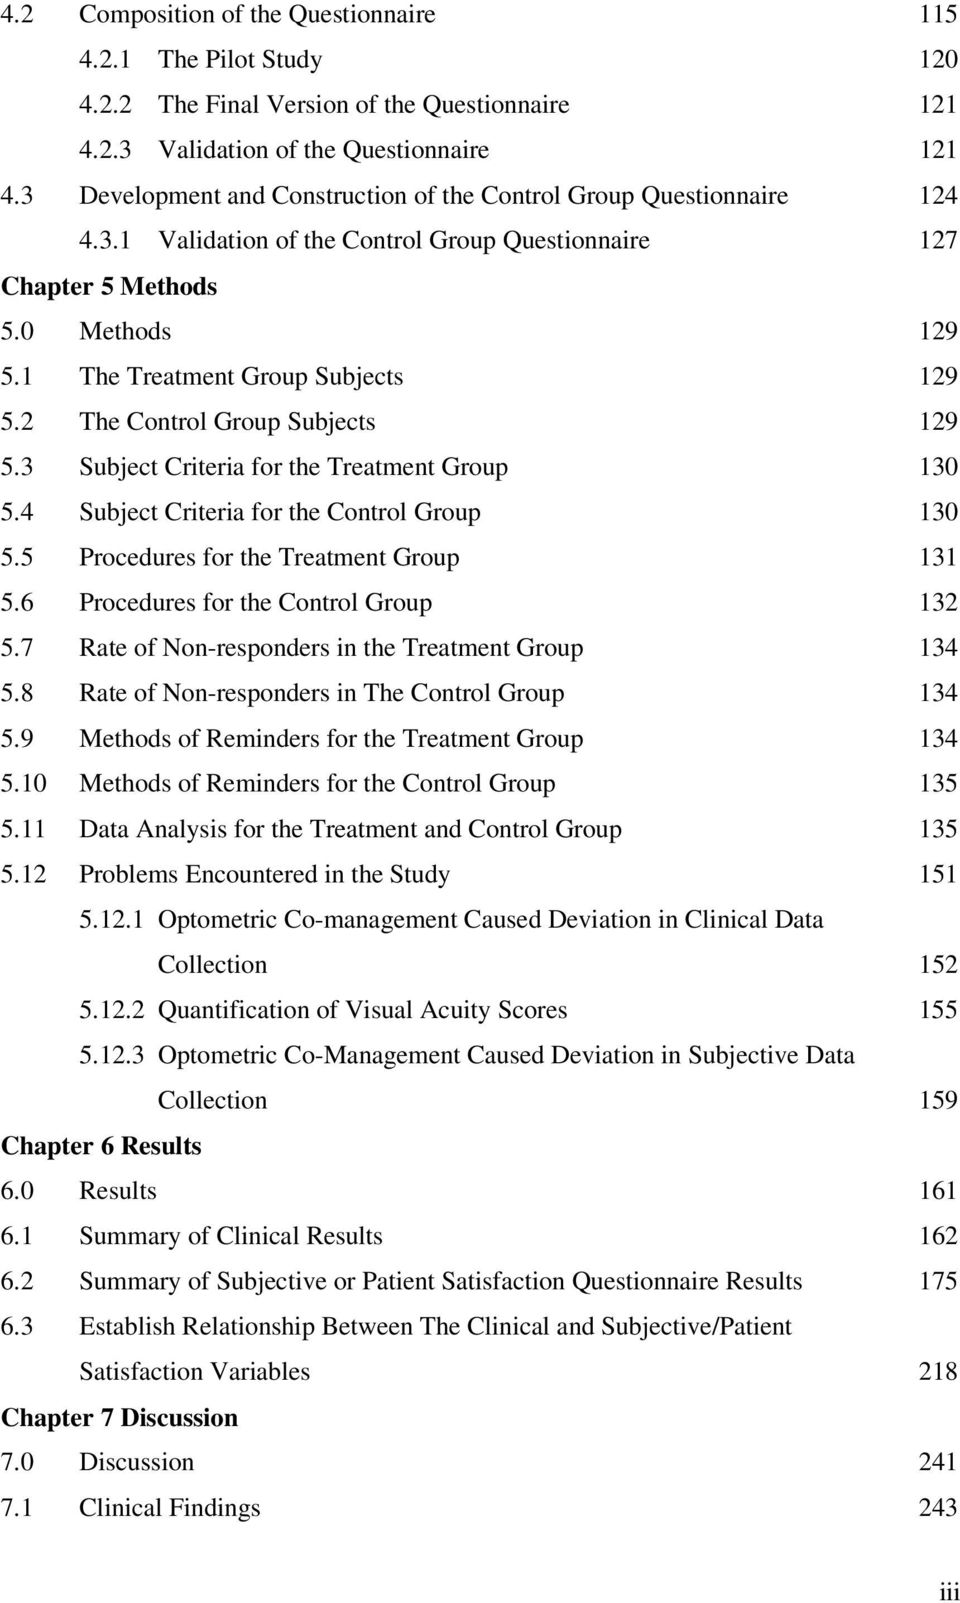 2 The Control Group Subjects 129 5.3 Subject Criteria for the Treatment Group 130 5.4 Subject Criteria for the Control Group 130 5.5 Procedures for the Treatment Group 131 5.